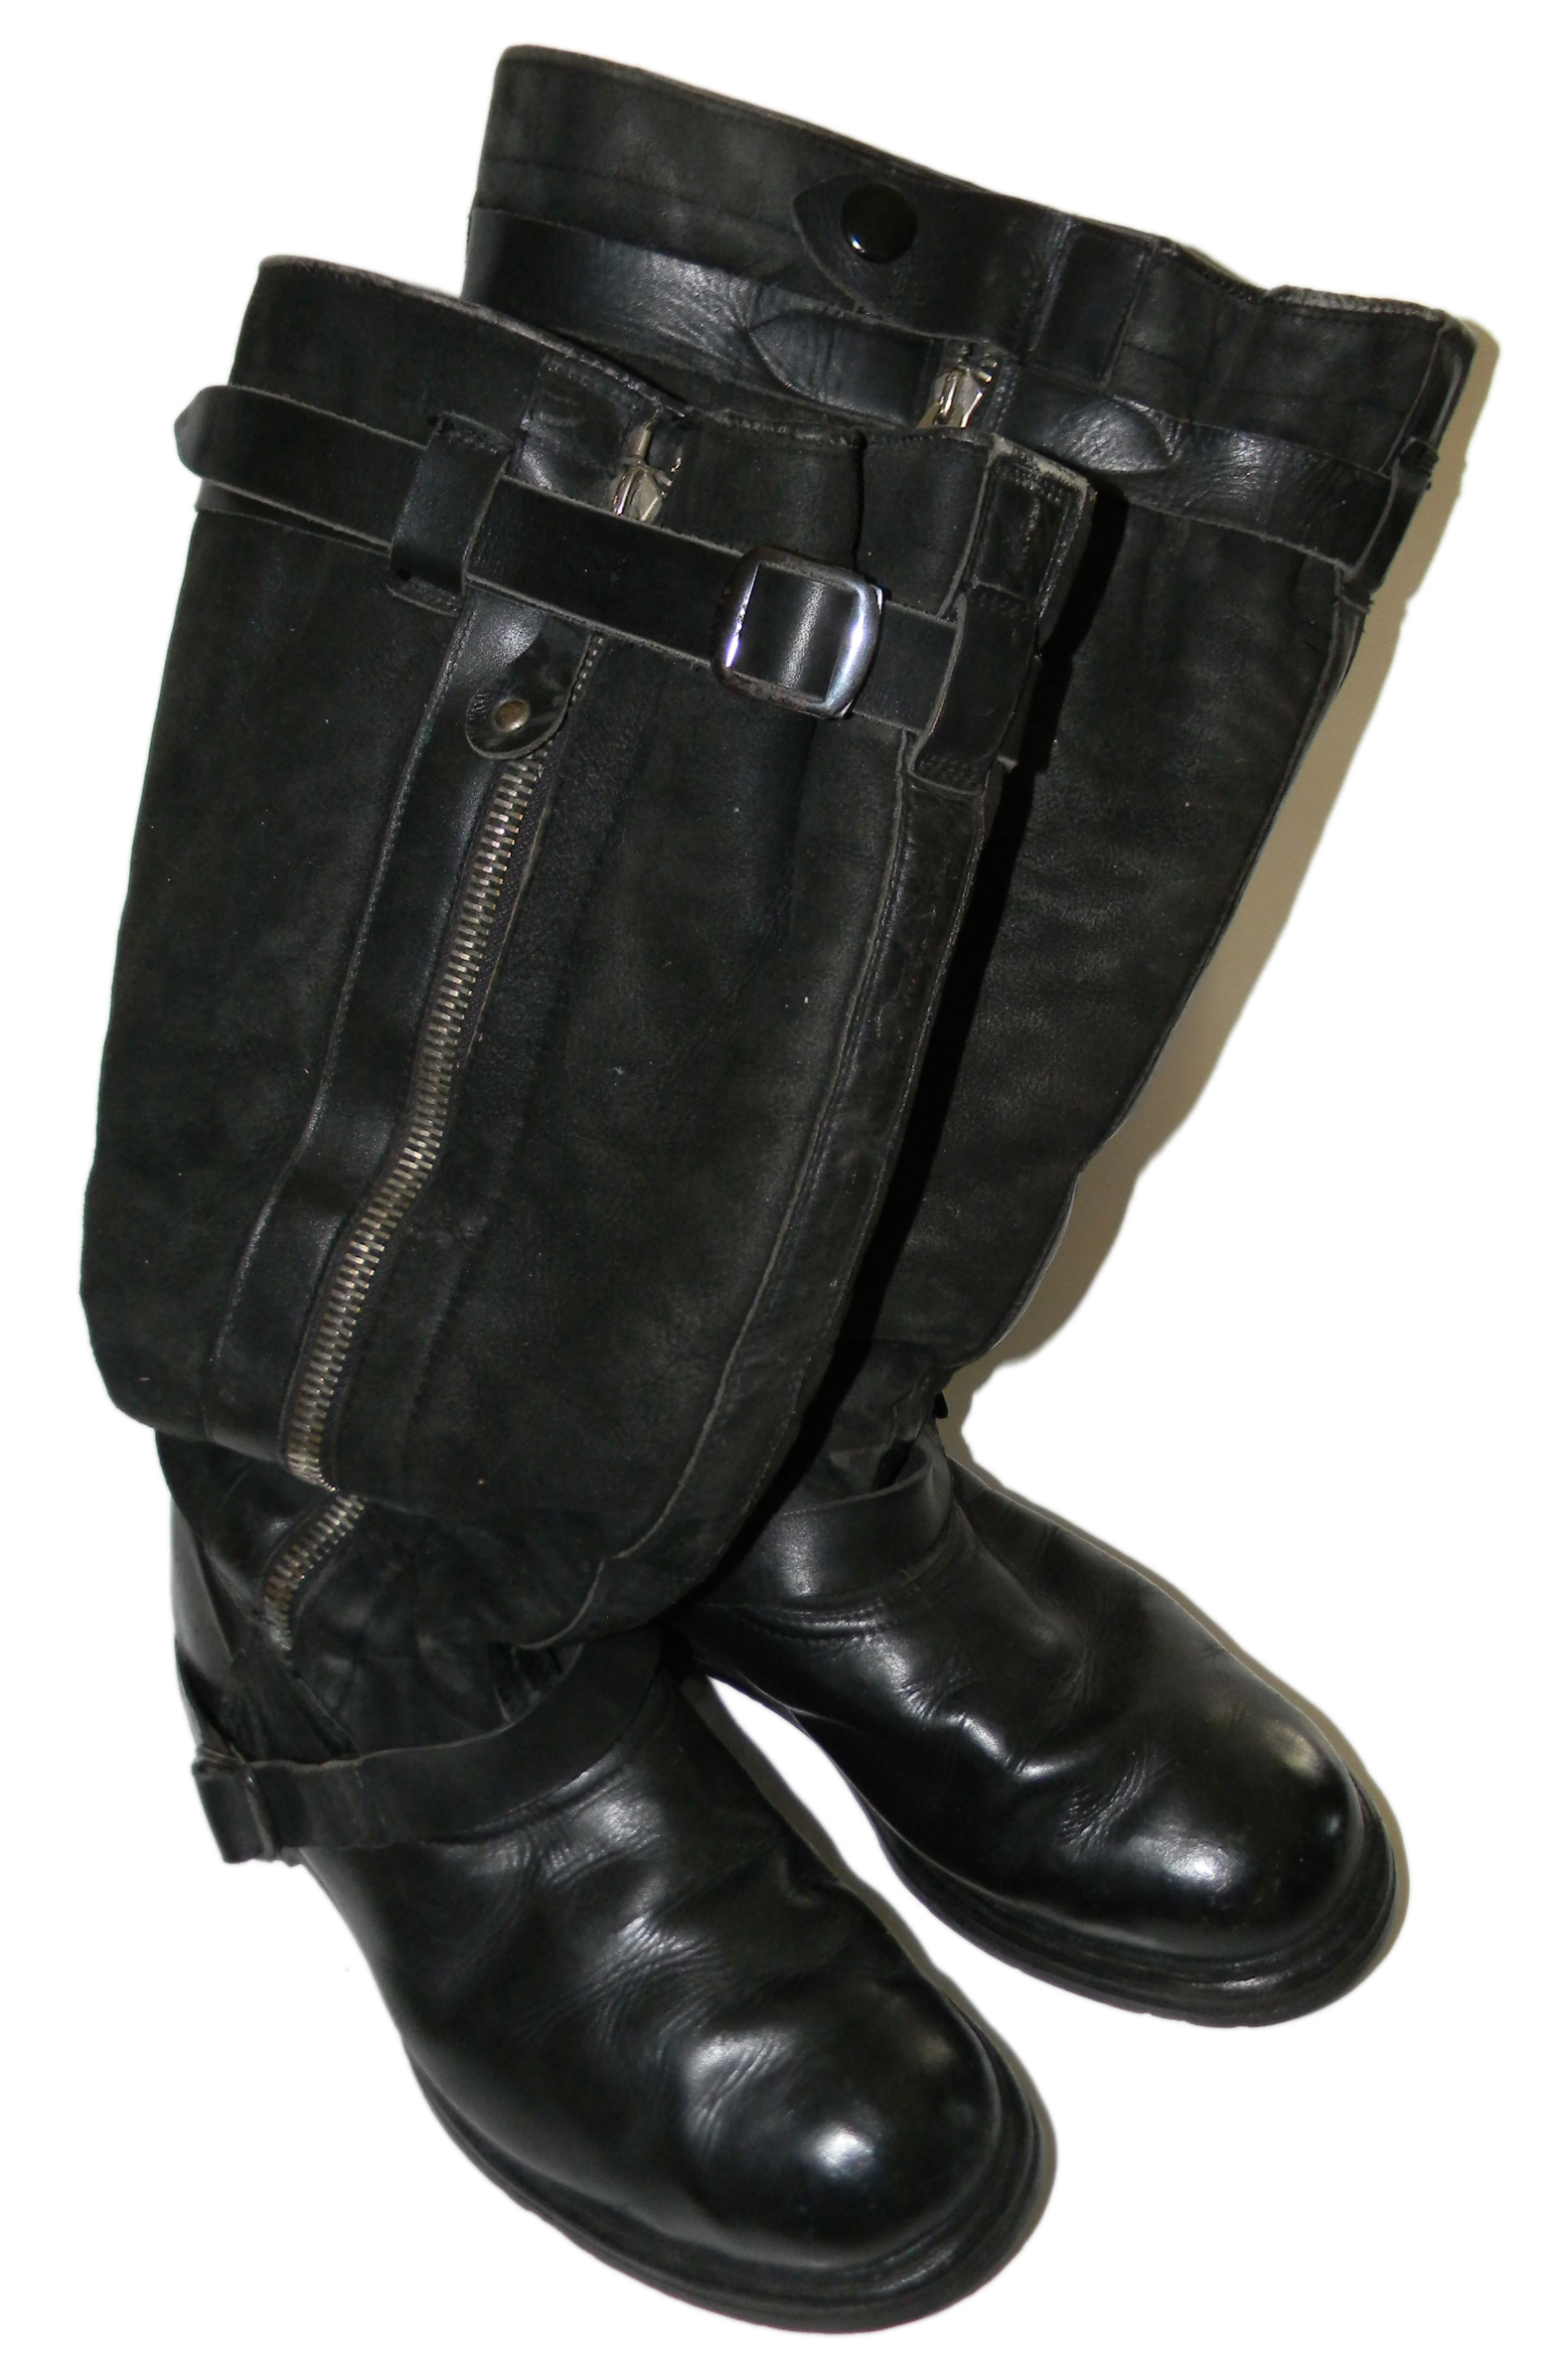 1939 Luftwaffe double-zip boots